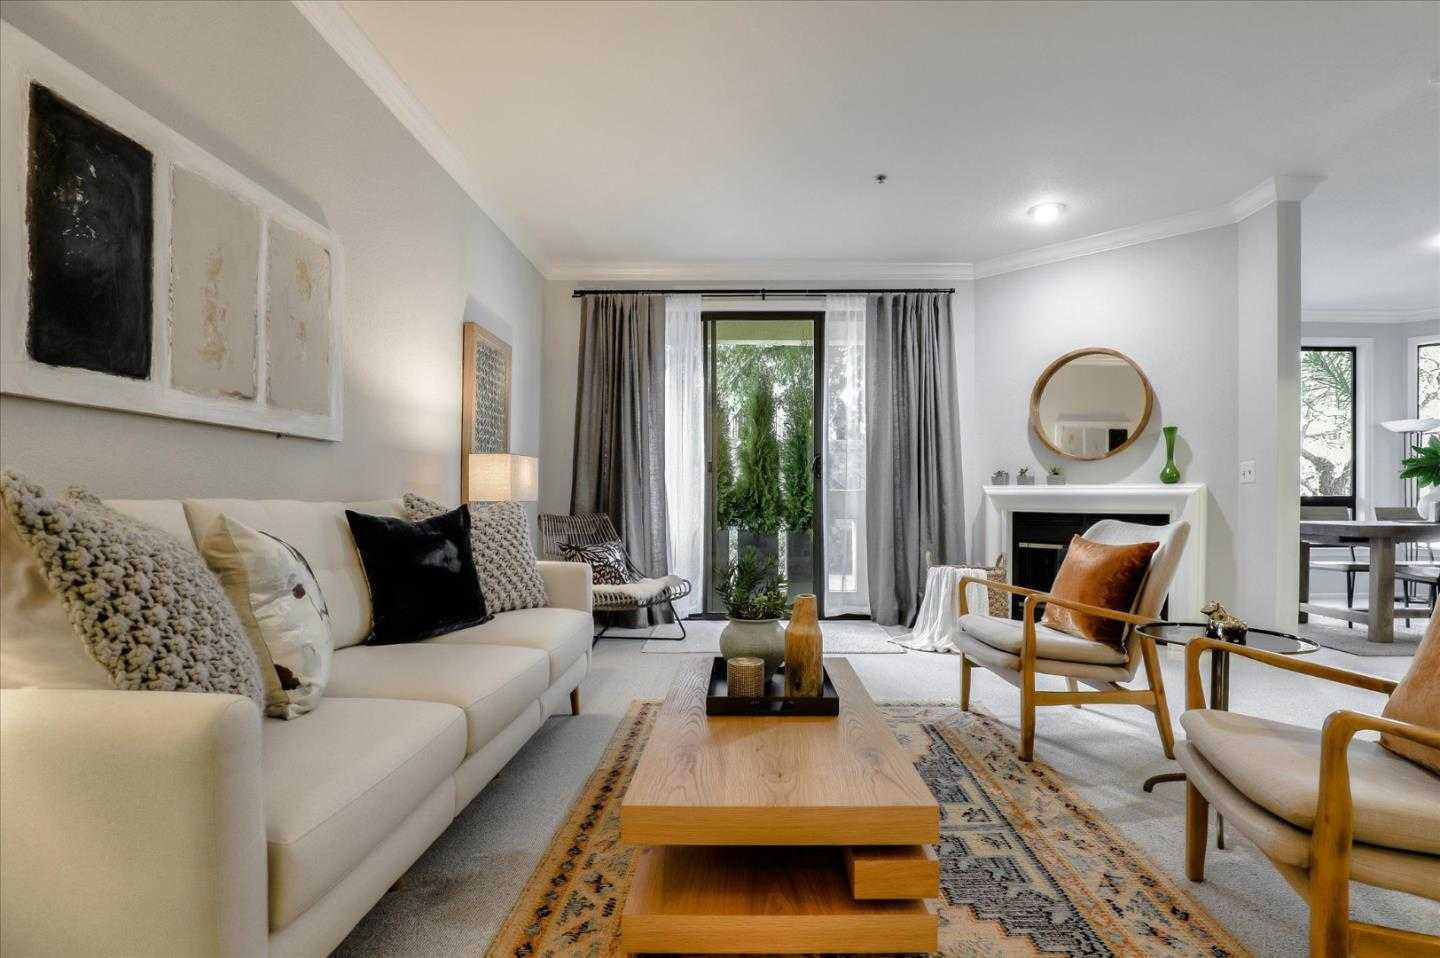 $1,295,000 - 2Br/2Ba -  for Sale in Burlingame